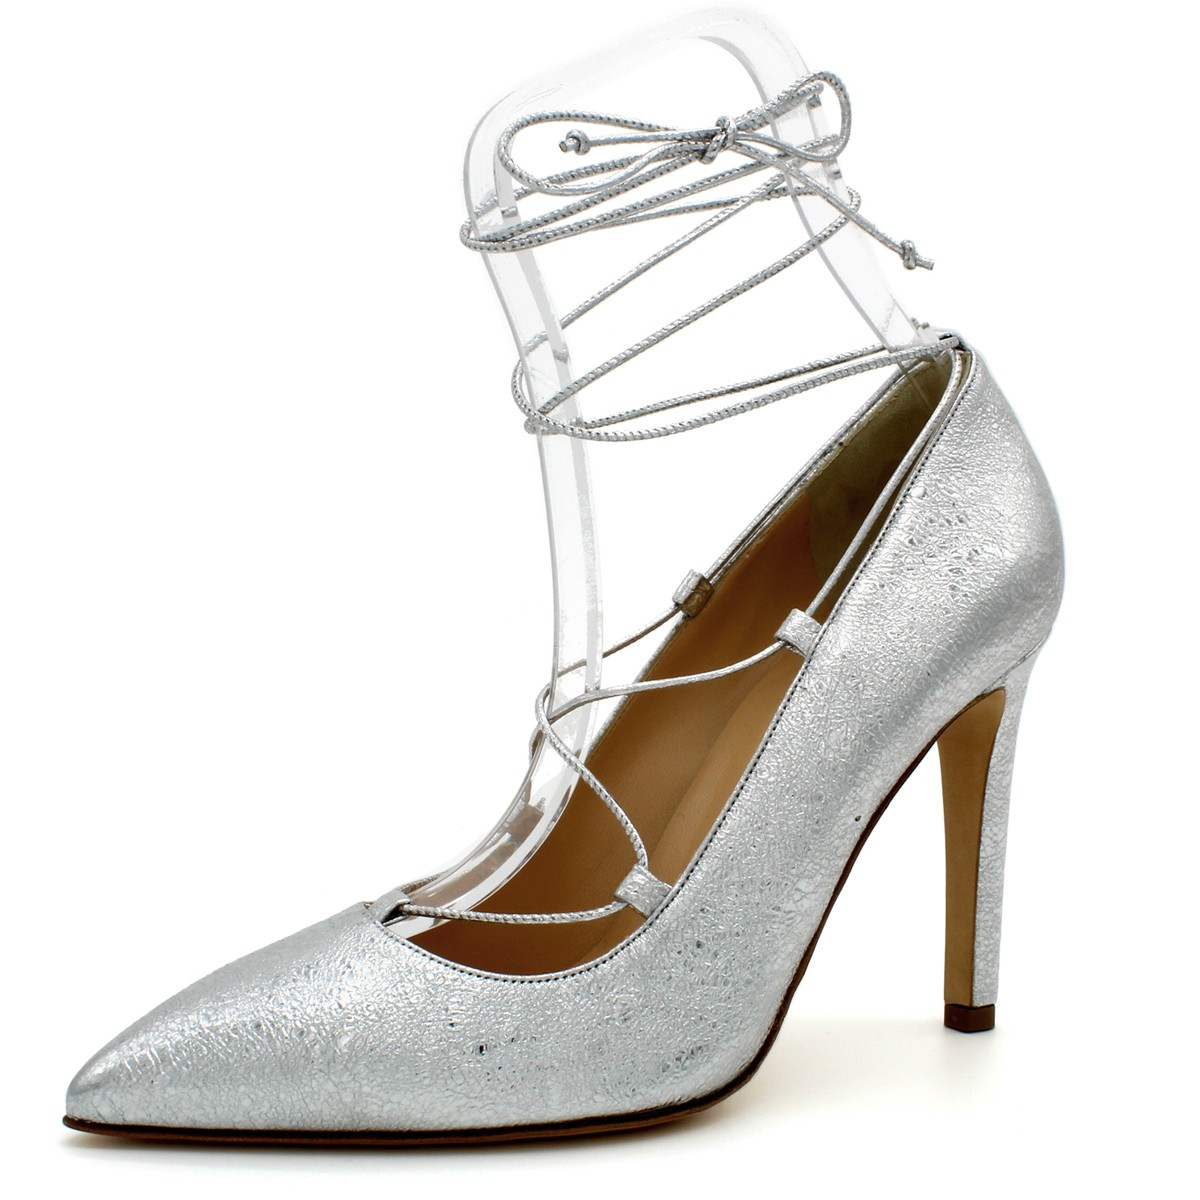 SILVER LACE-UP ITALIAN PUMPS